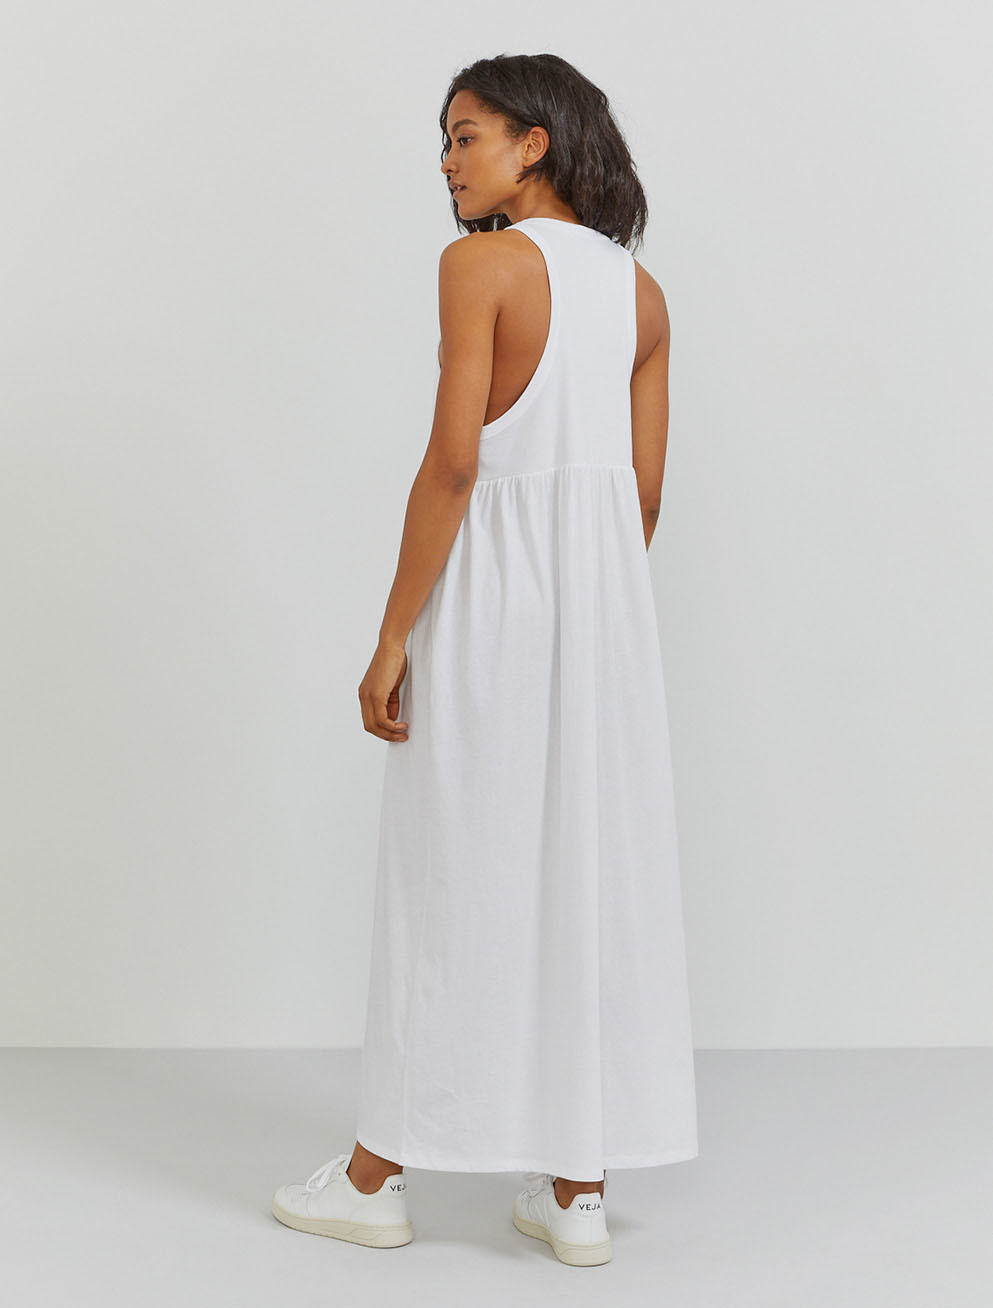 Organic cotton sleeveless maxi dress